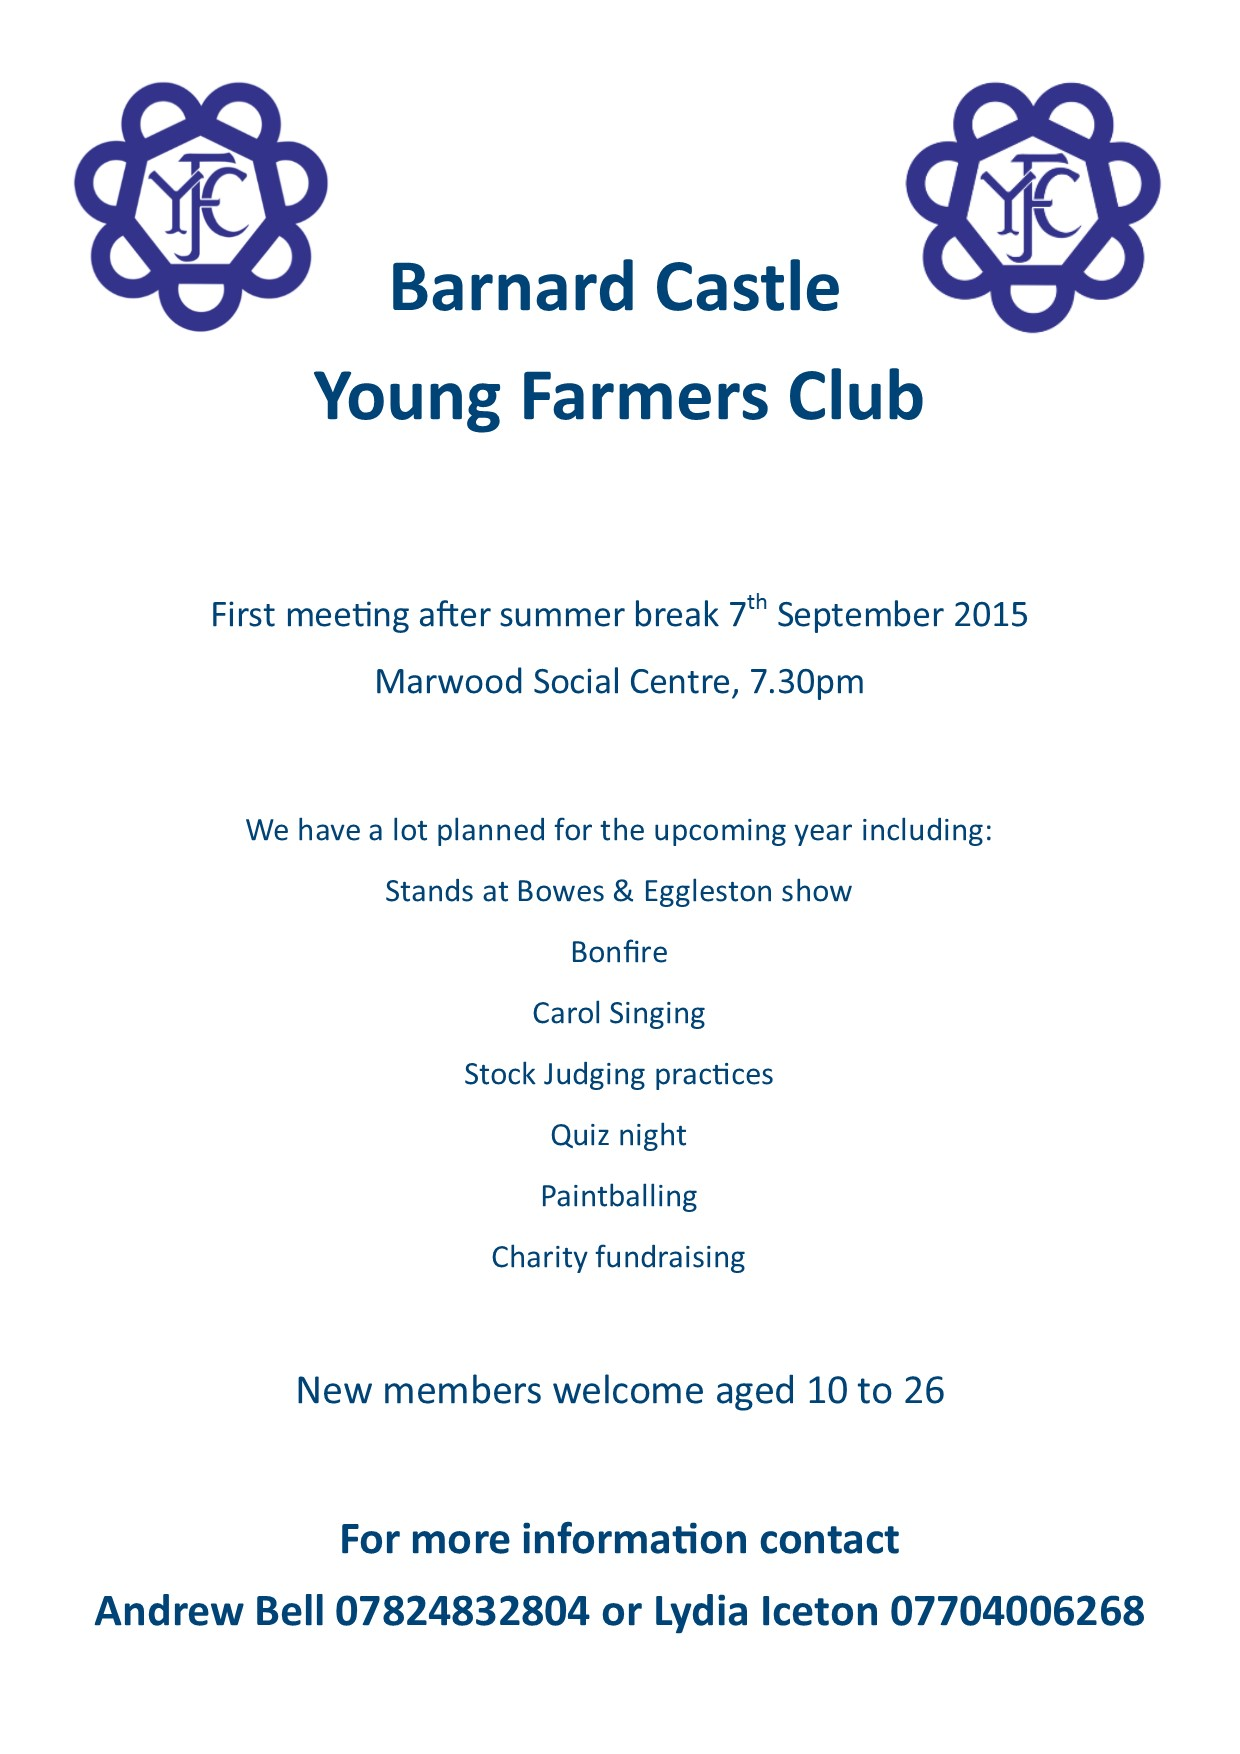 Barnard Castle Young Famers Club